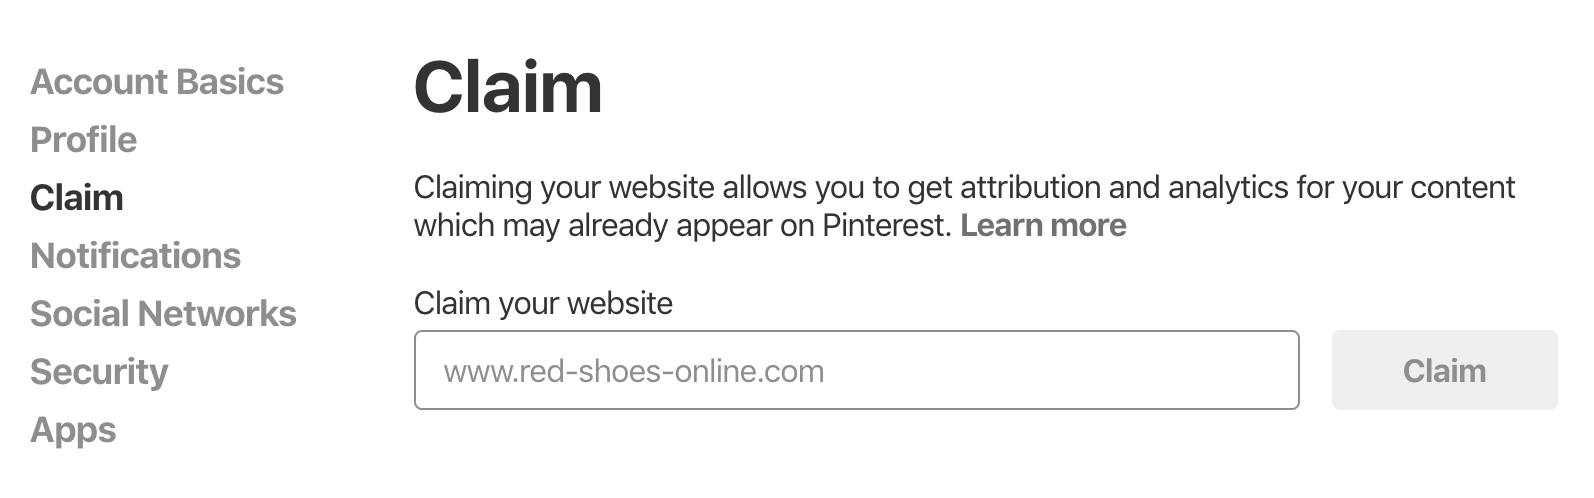 Claim Website On Pinterest